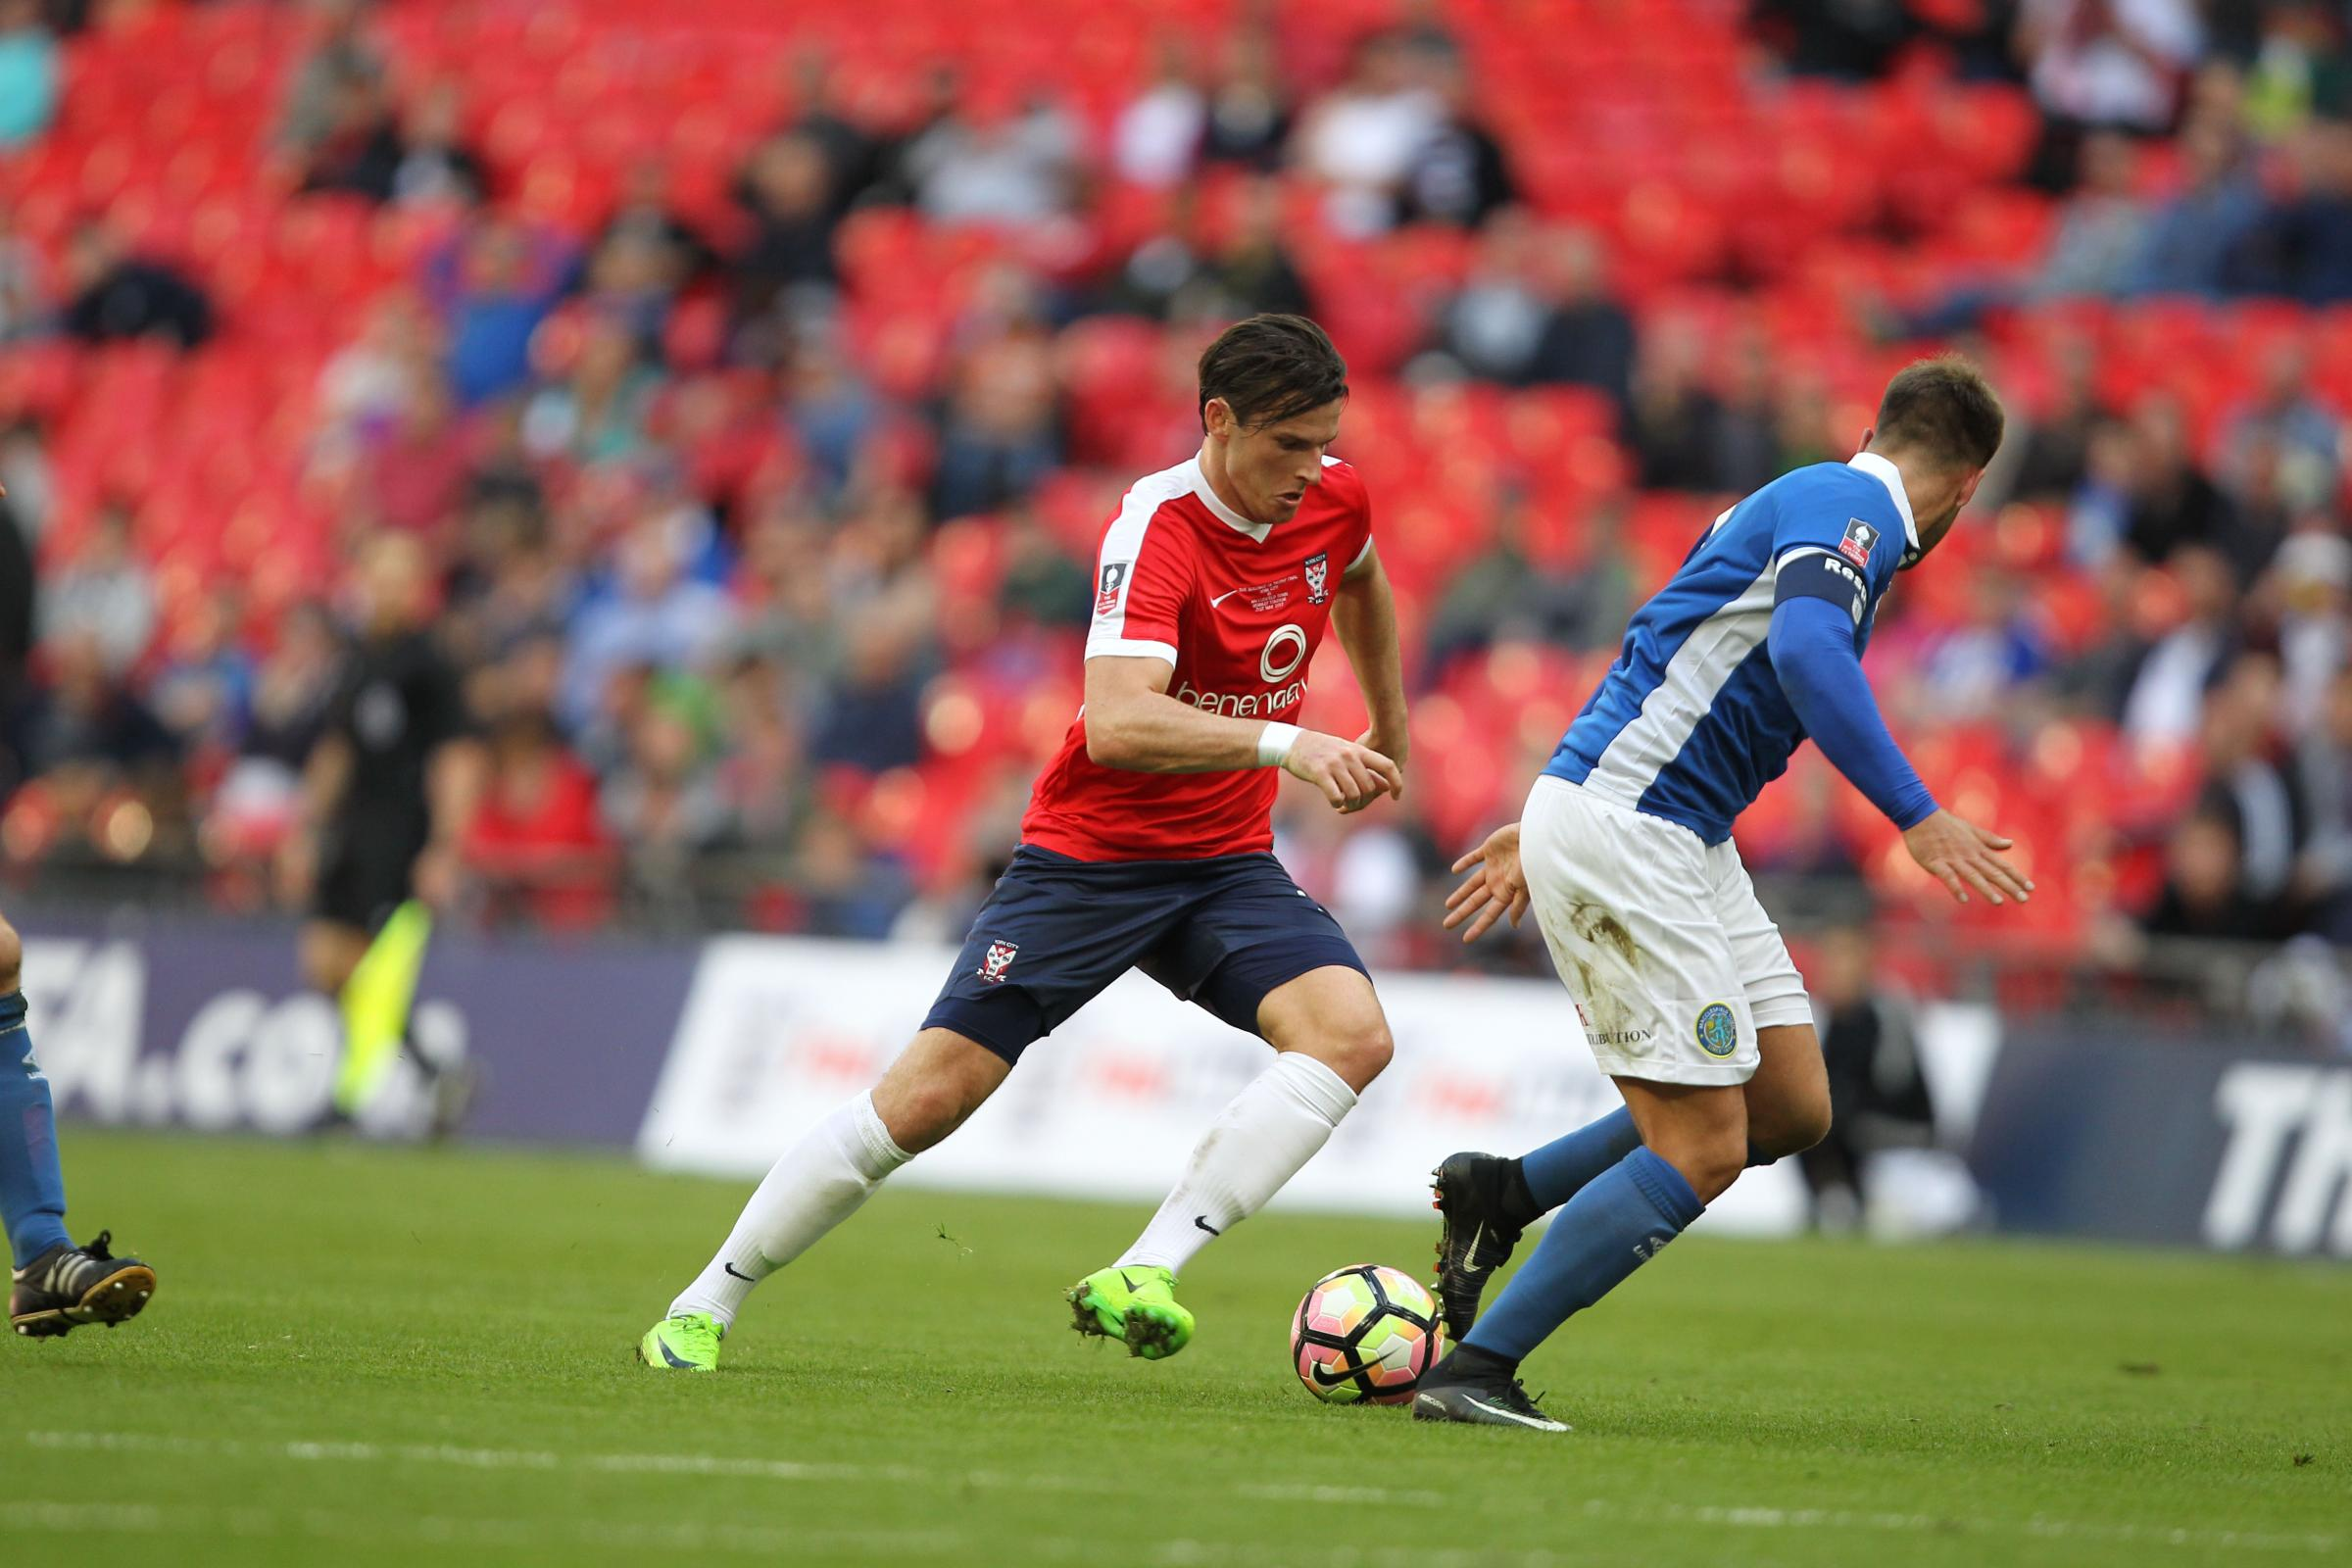 FORWARD MOMENTUM: York City midfielder Sean Newton takes the game to Macclesfield during the 3-2 win at Wembley. Picture: Gordon Clayton